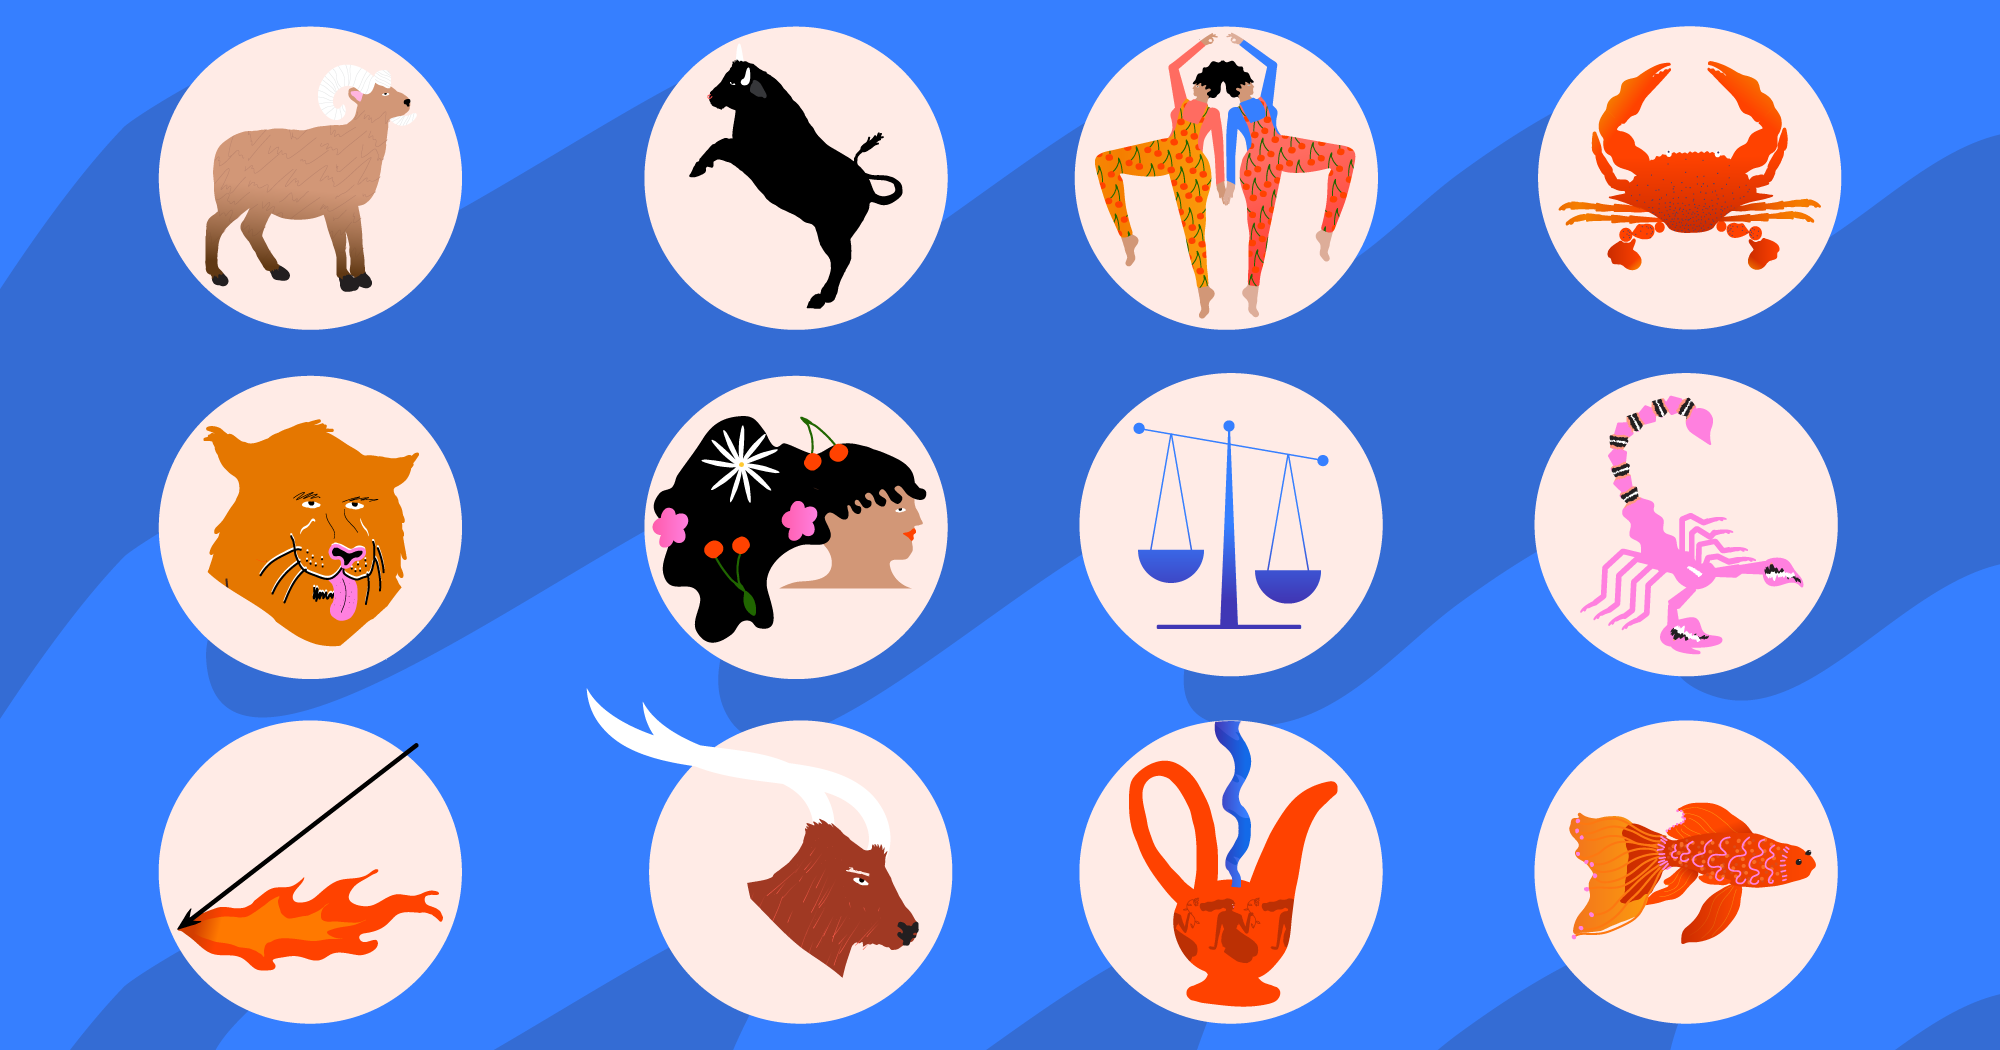 September 2019 parenting horoscope each zodiac sign